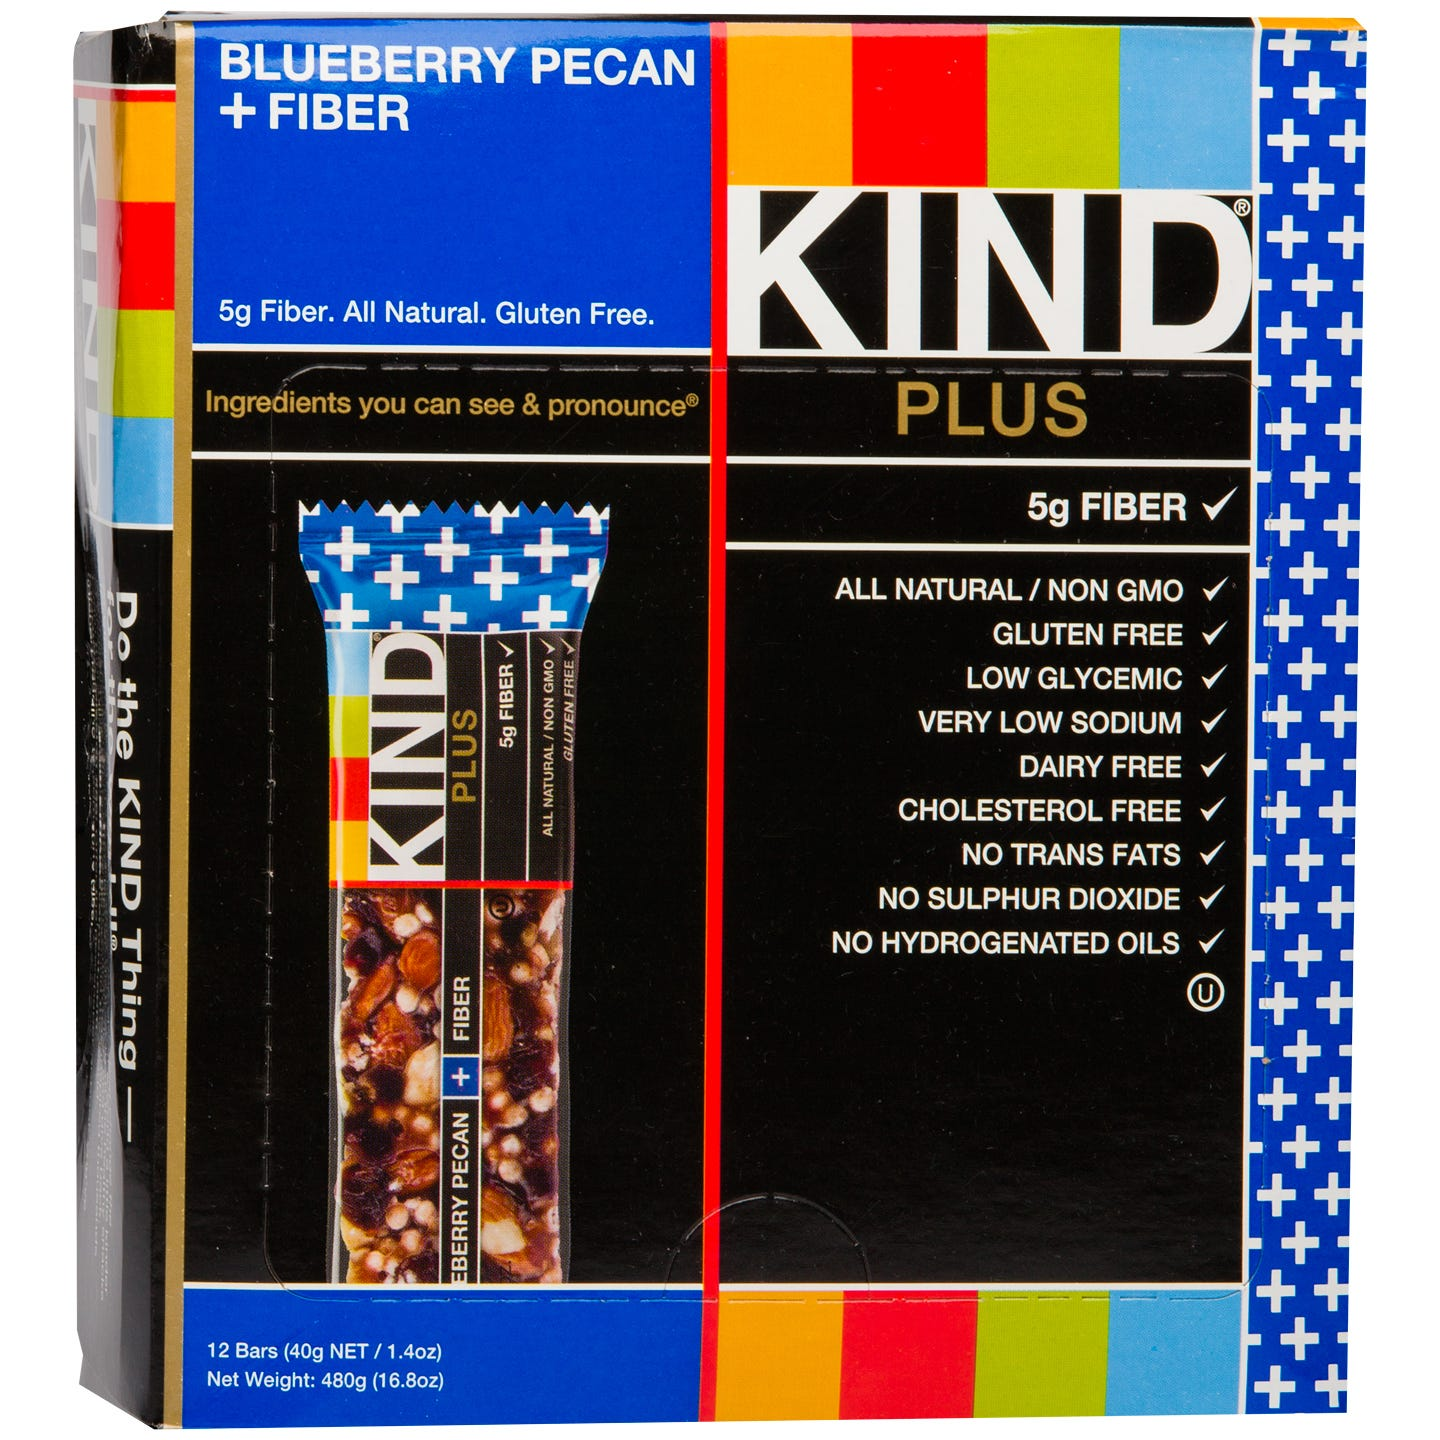 Kind Plus Fiber Bar Blueberry Pecan (12 ct) - Rapid Diet Weight Loss Products Shop